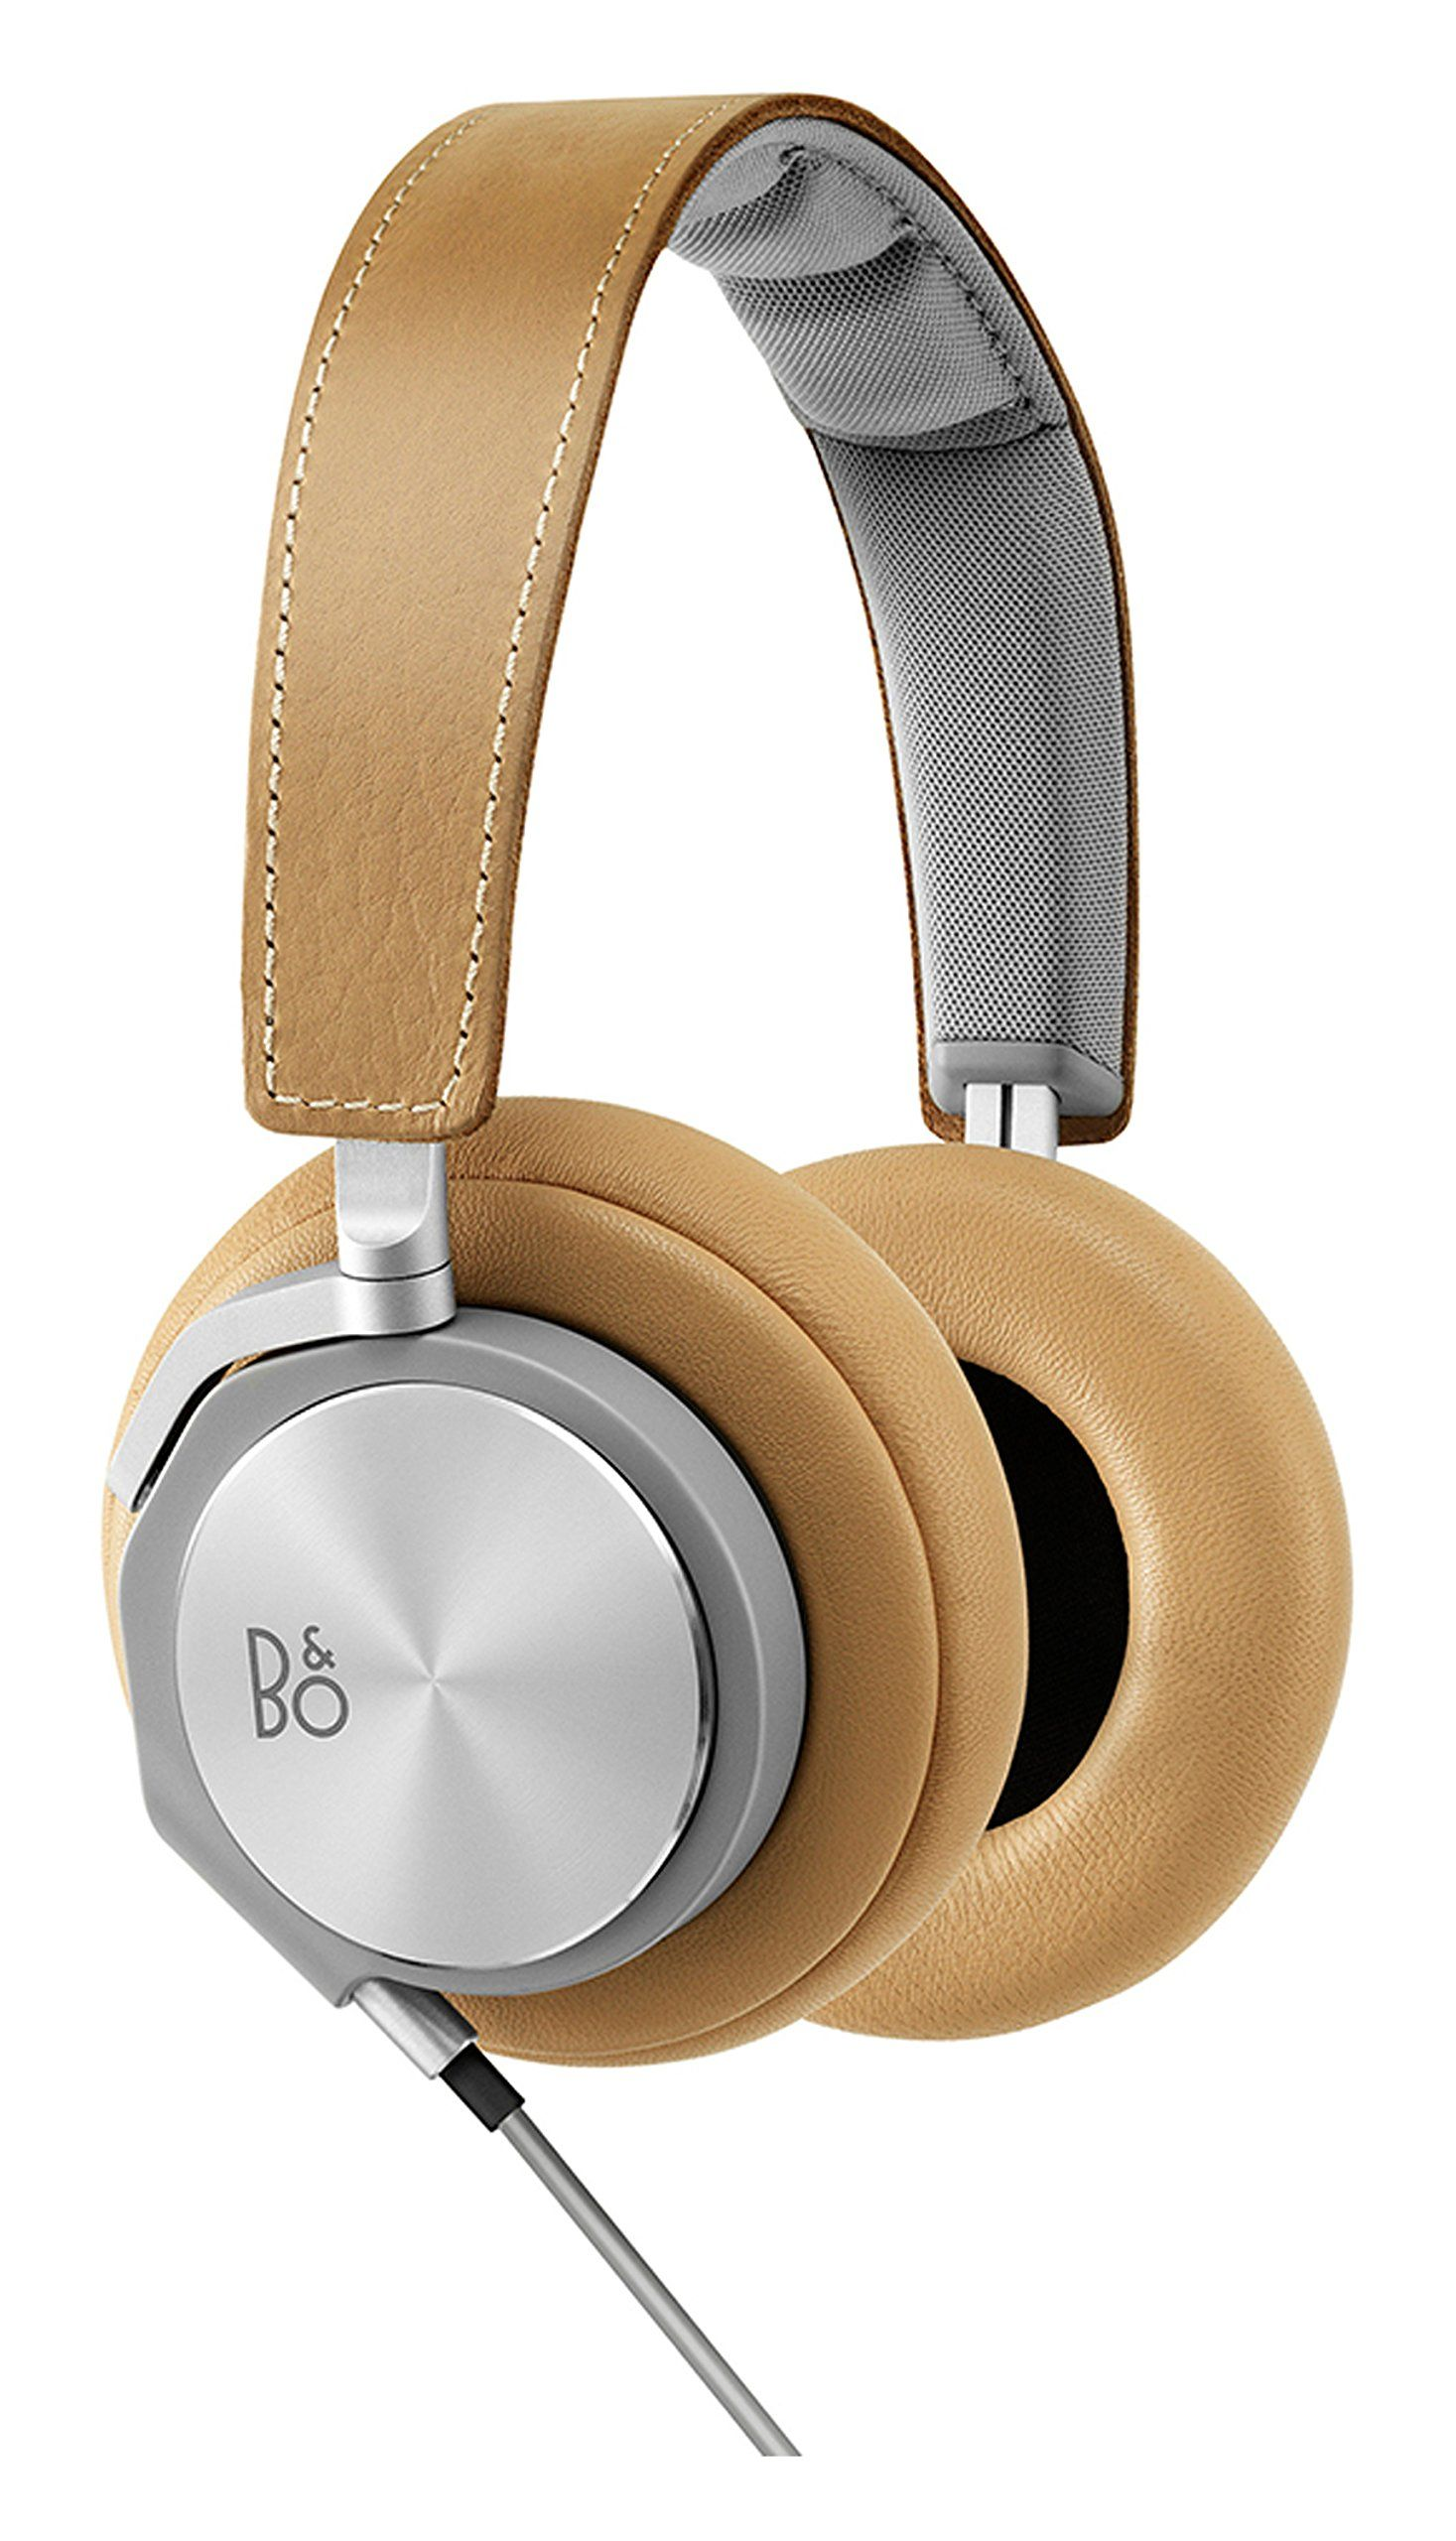 ba14f948564f70 B&O PLAY by BANG & OLUFSEN - BeoPlay H6 Over-Ear Headphones, Natural  (1642003) 398.00€